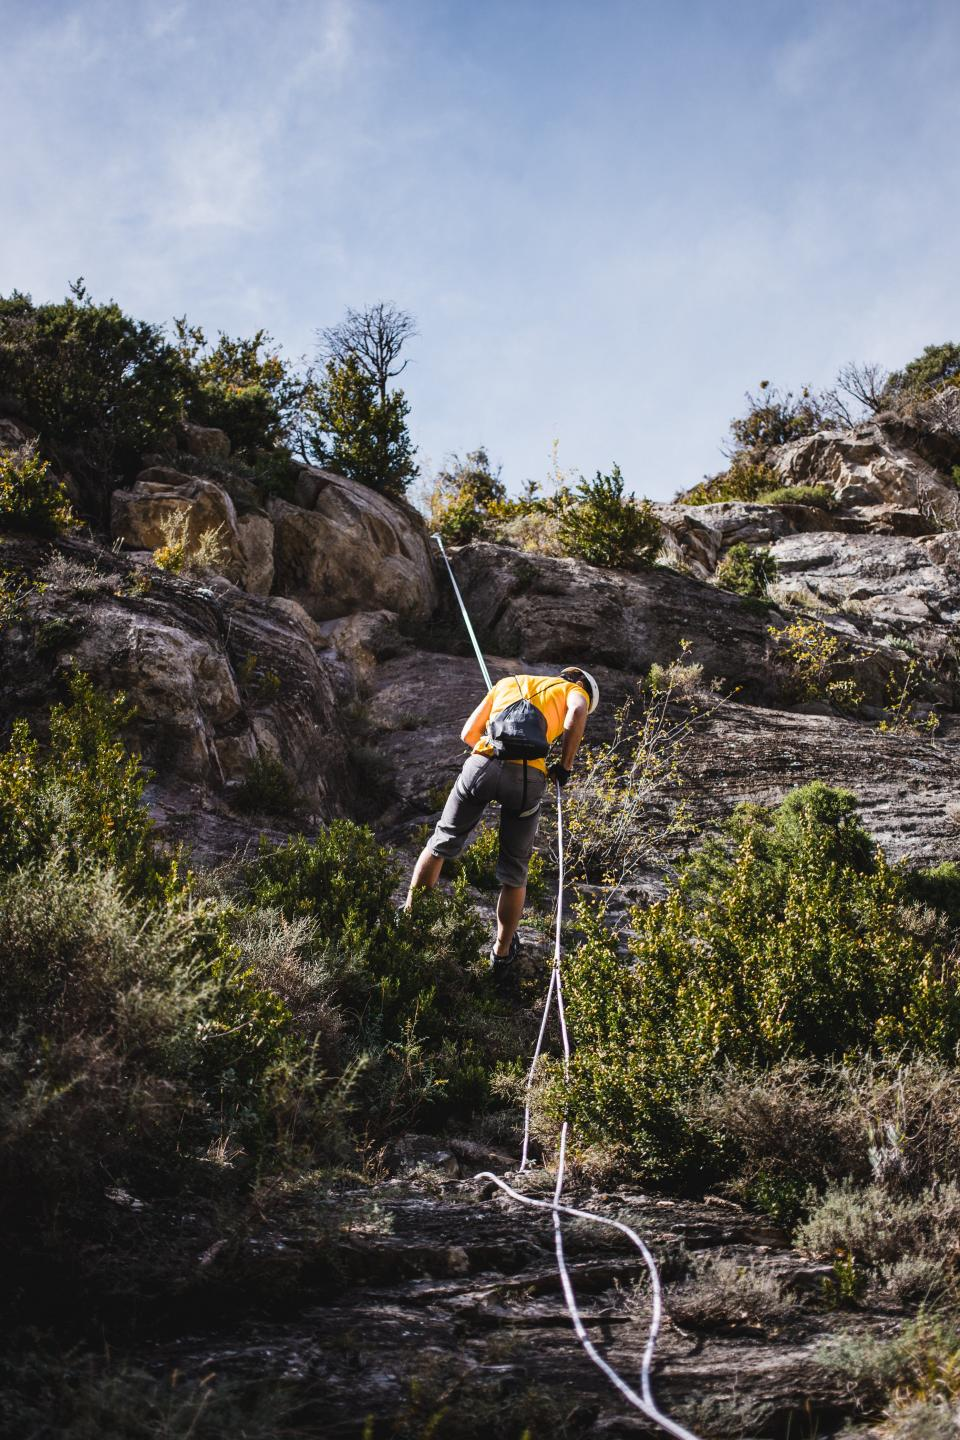 people man guy adventure cliff rocks hill mountain landscape rappelling rope fitness health outdoor travel sky green grass trees plants